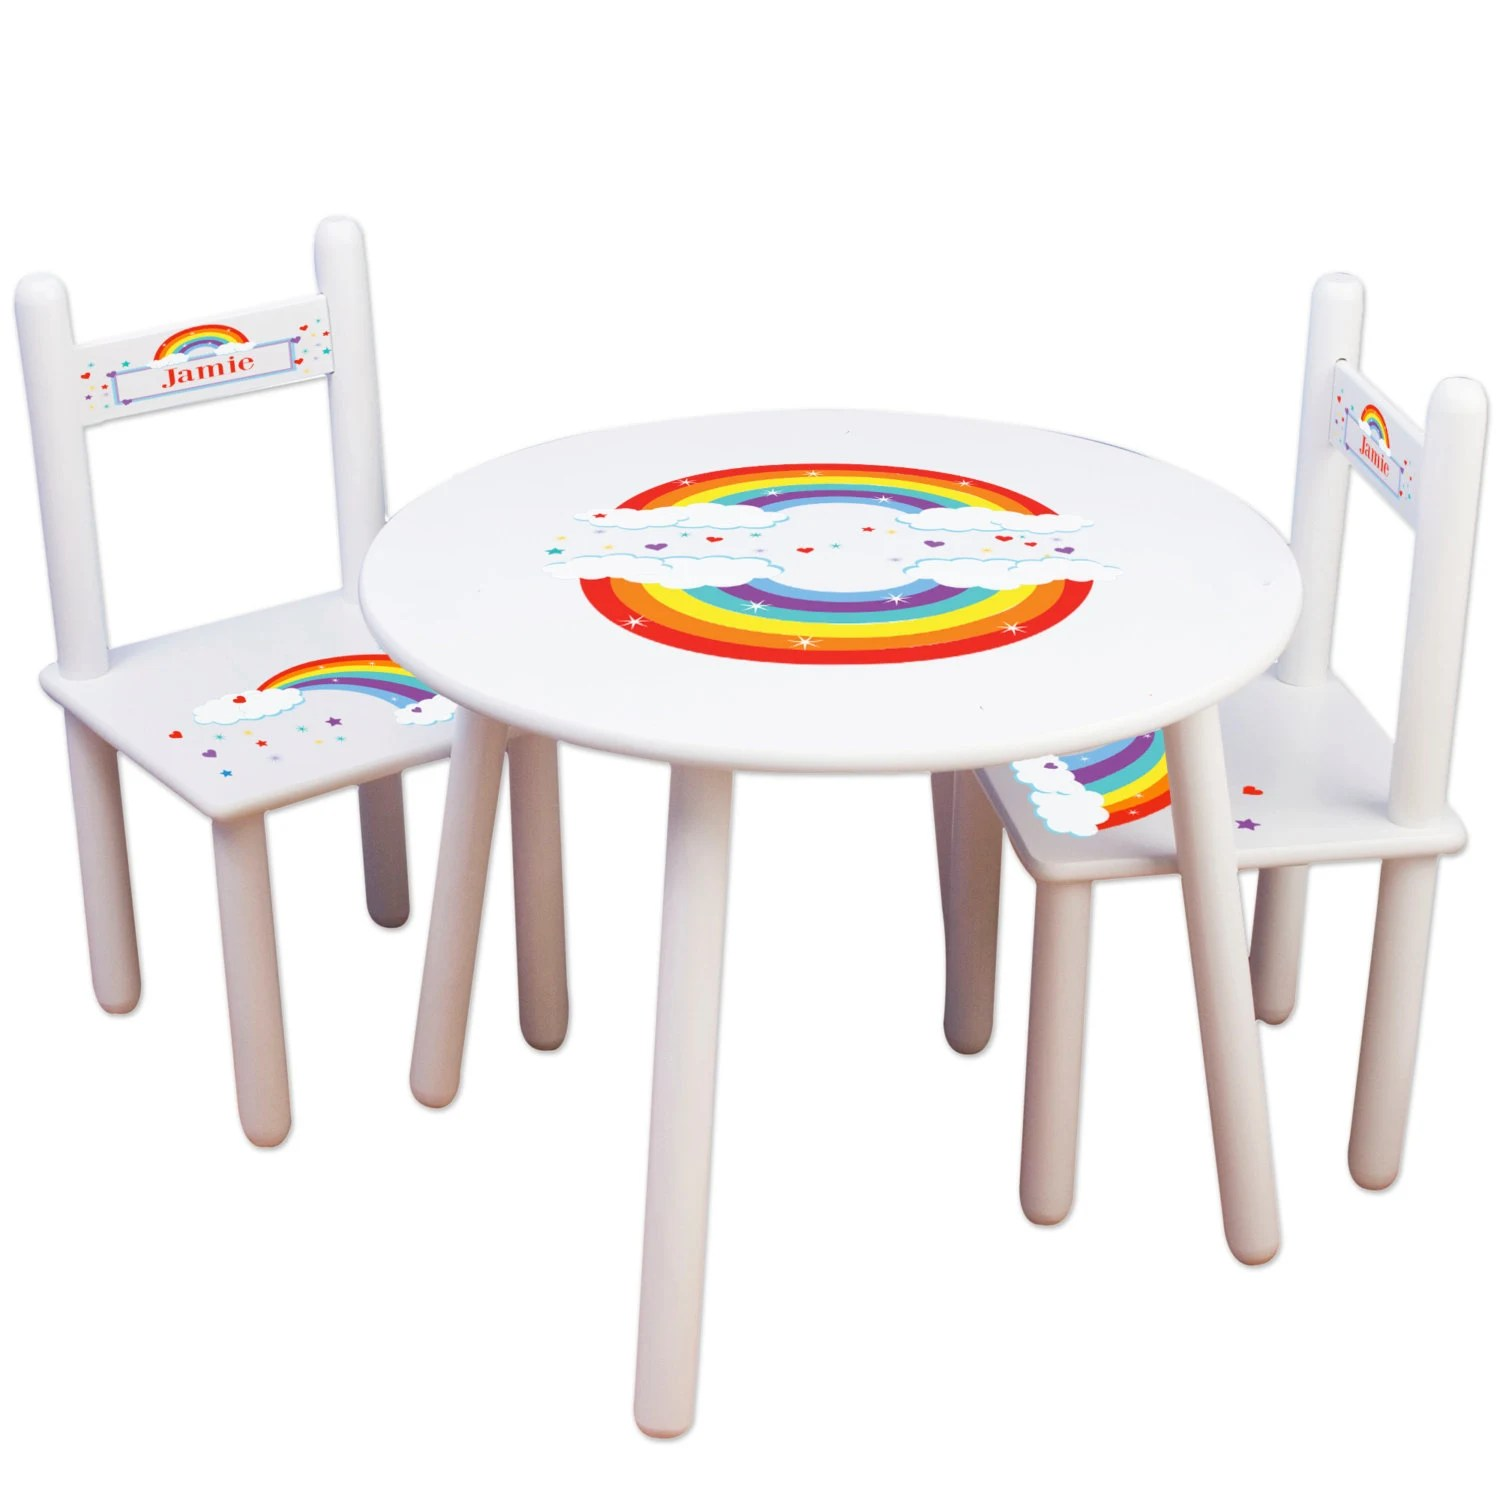 Little Kid Chairs Childs Rainbow Table Chair Set Personalized Kids Furniture Playroom Classroom Rainbows Primary Colors Toddler Play Table Tablesetrnd